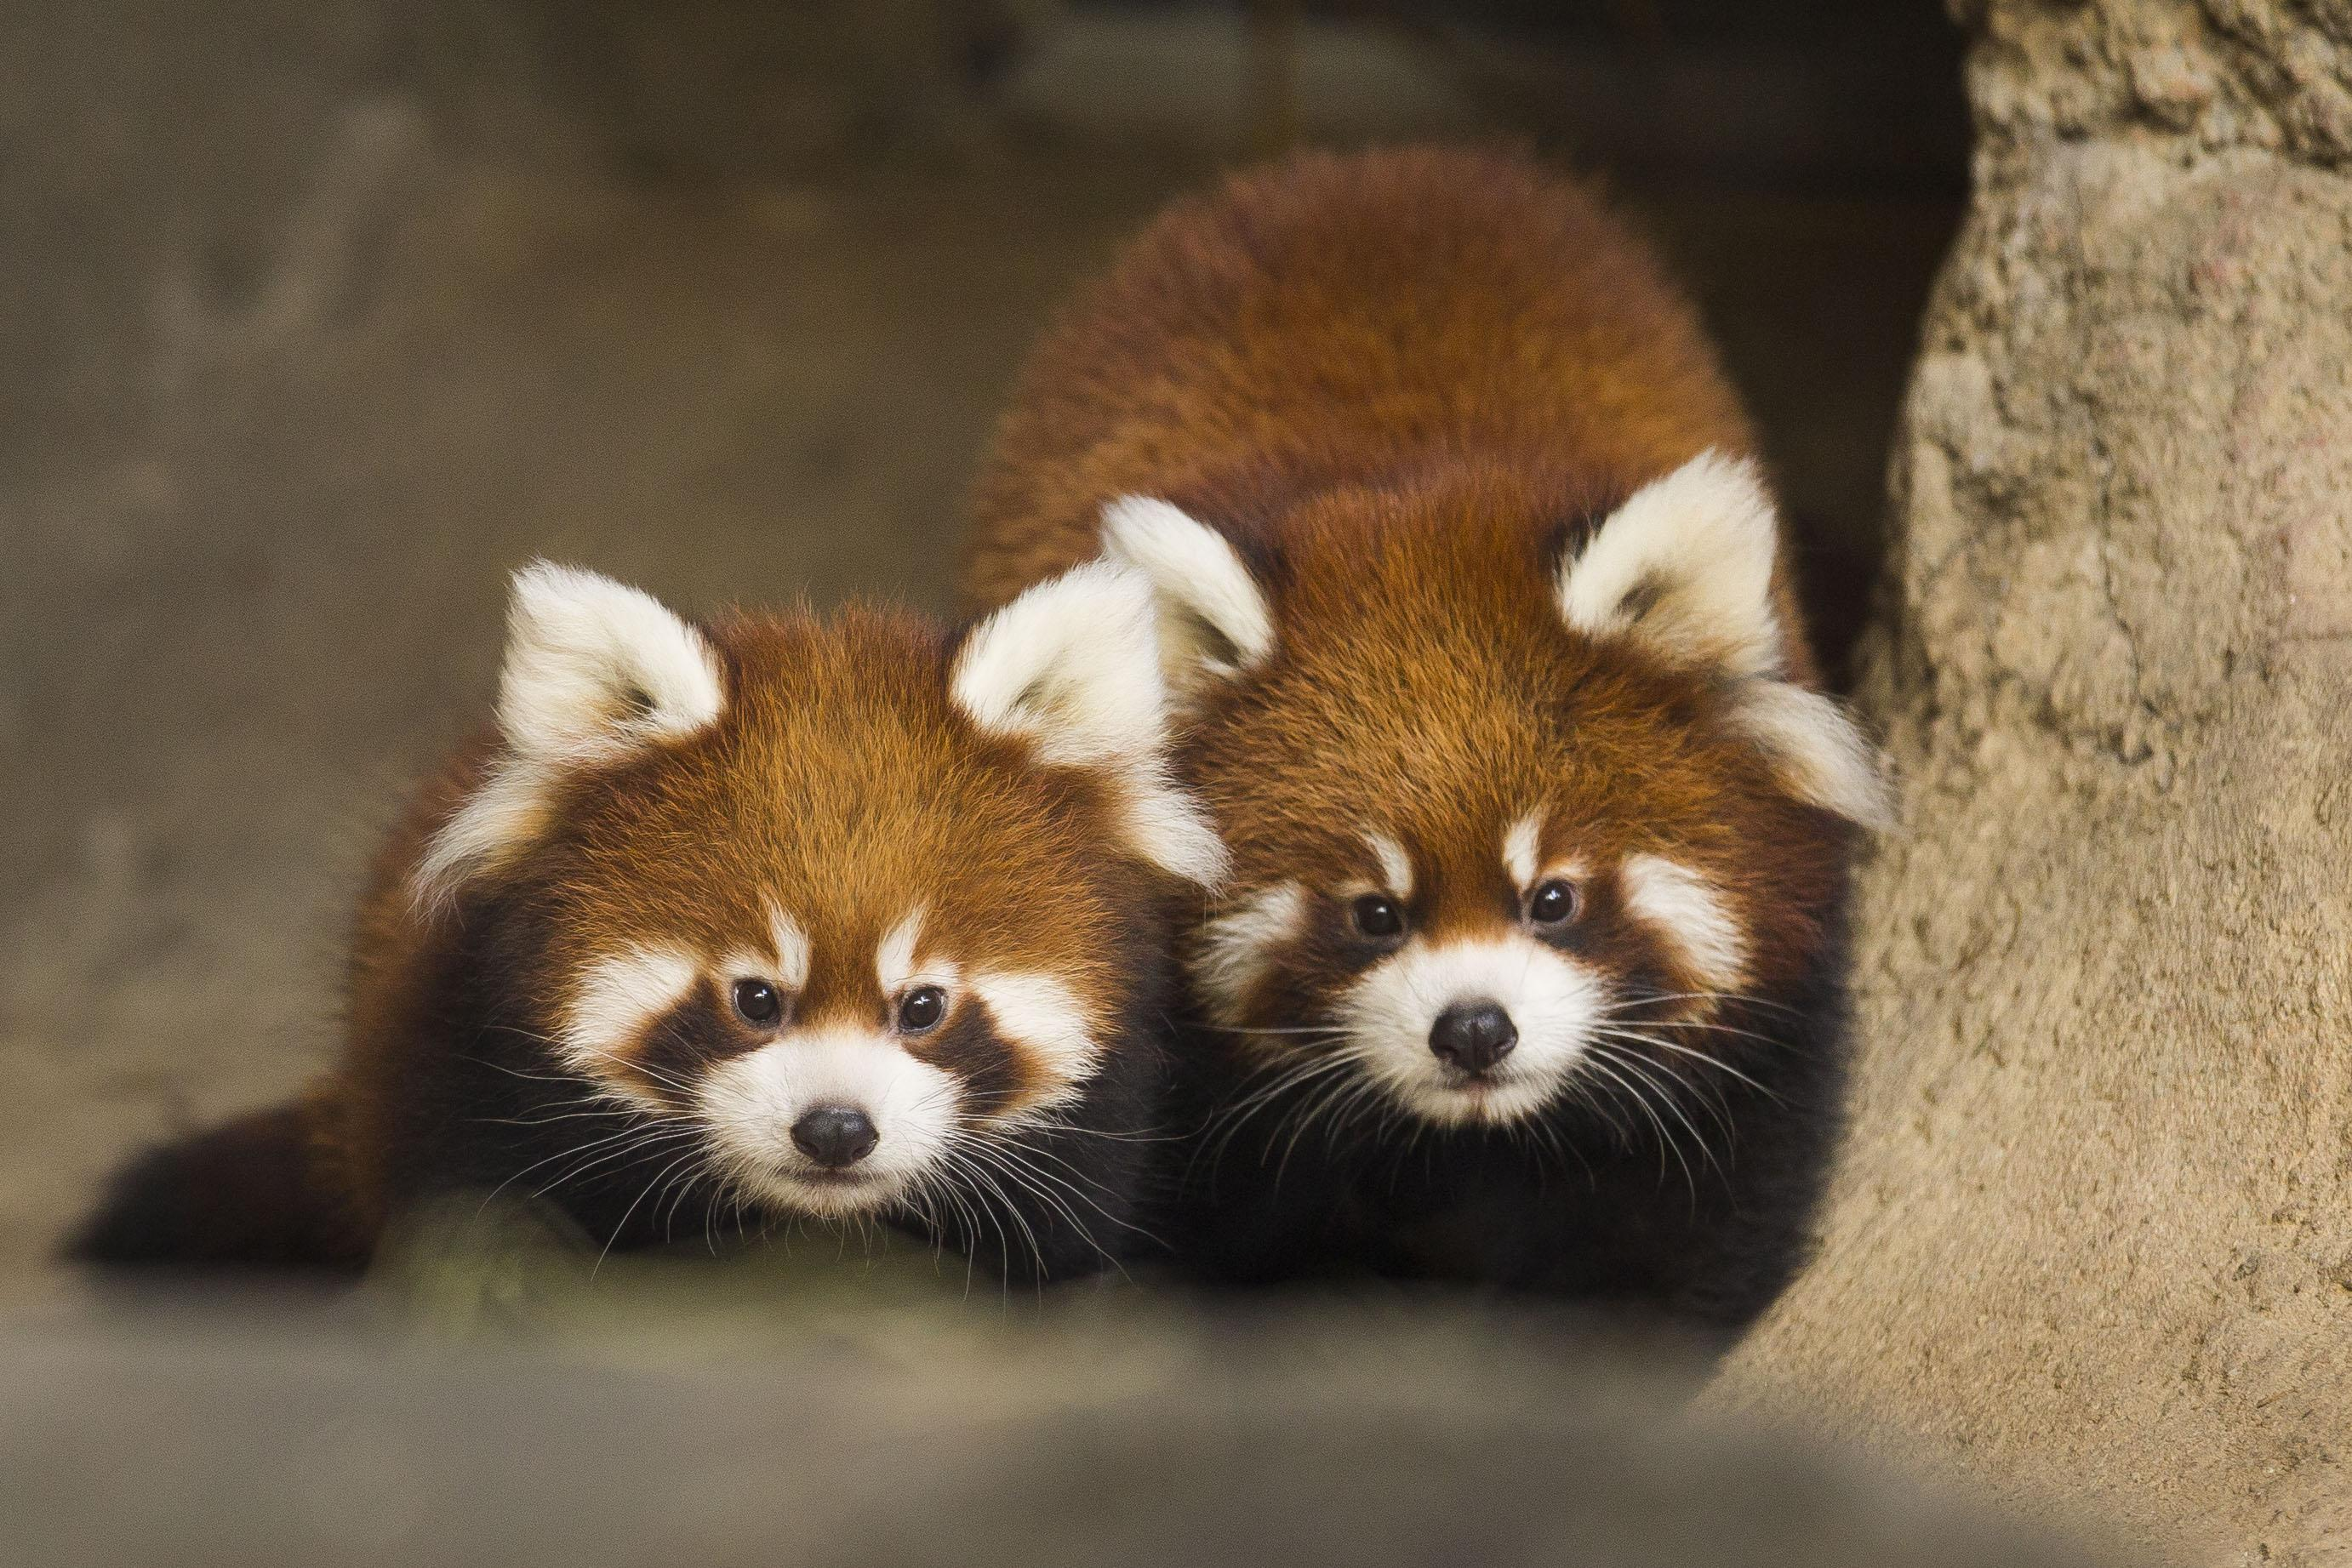 Cute Baby Couple Hd Wallpaper Red Panda Cubs Leaving Lincoln Park Zoo Chicago Tonight